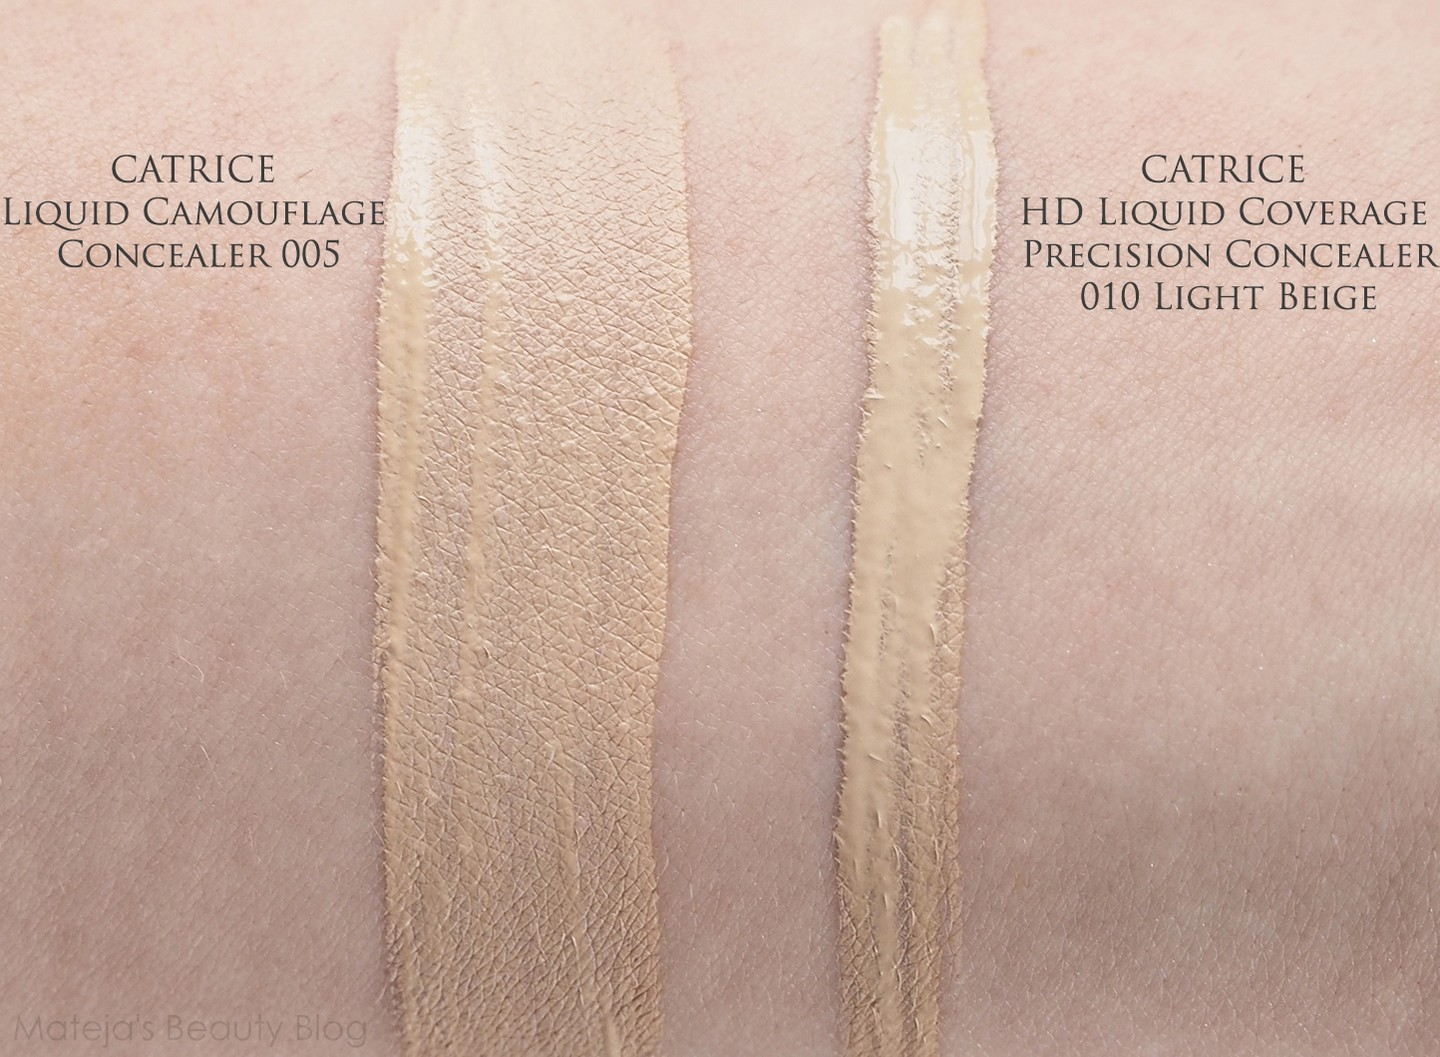 Catrice Hd Liquid Coverage Precision Concealer Matejas Beauty Blog Foundation Shade I Have The Lightest Called 010 Light Beige Which Is Similar To 005 In Camouflage But A Bit Lighter